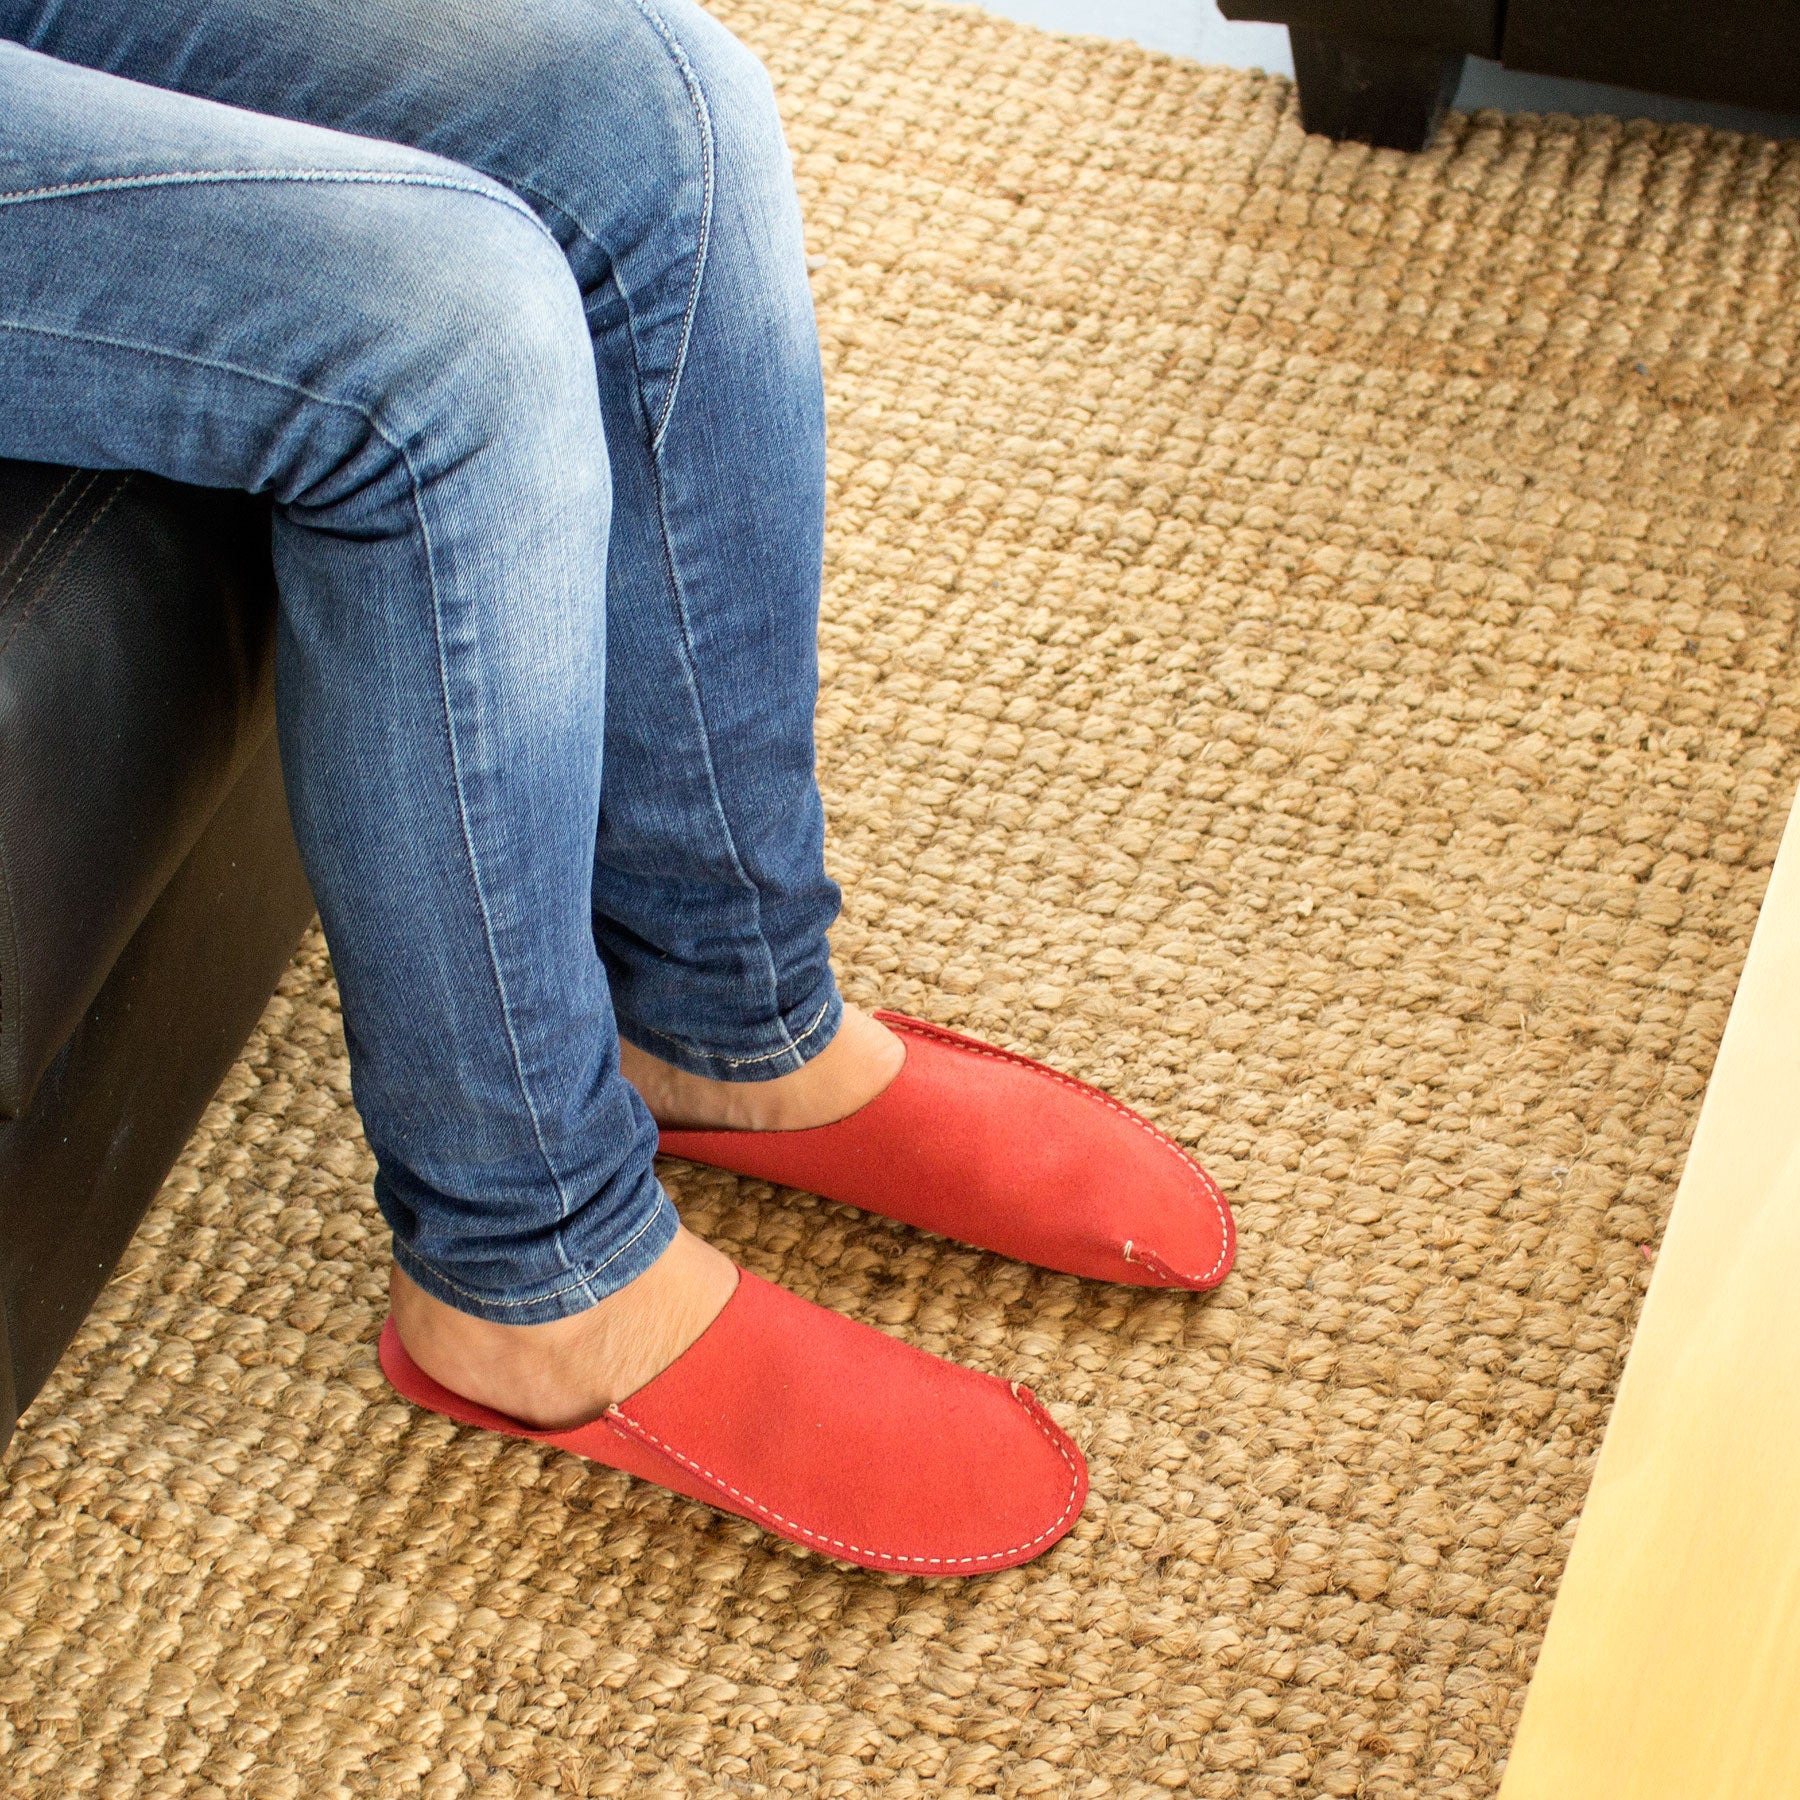 Red CP Slippers minimalist home slippers for man and woman